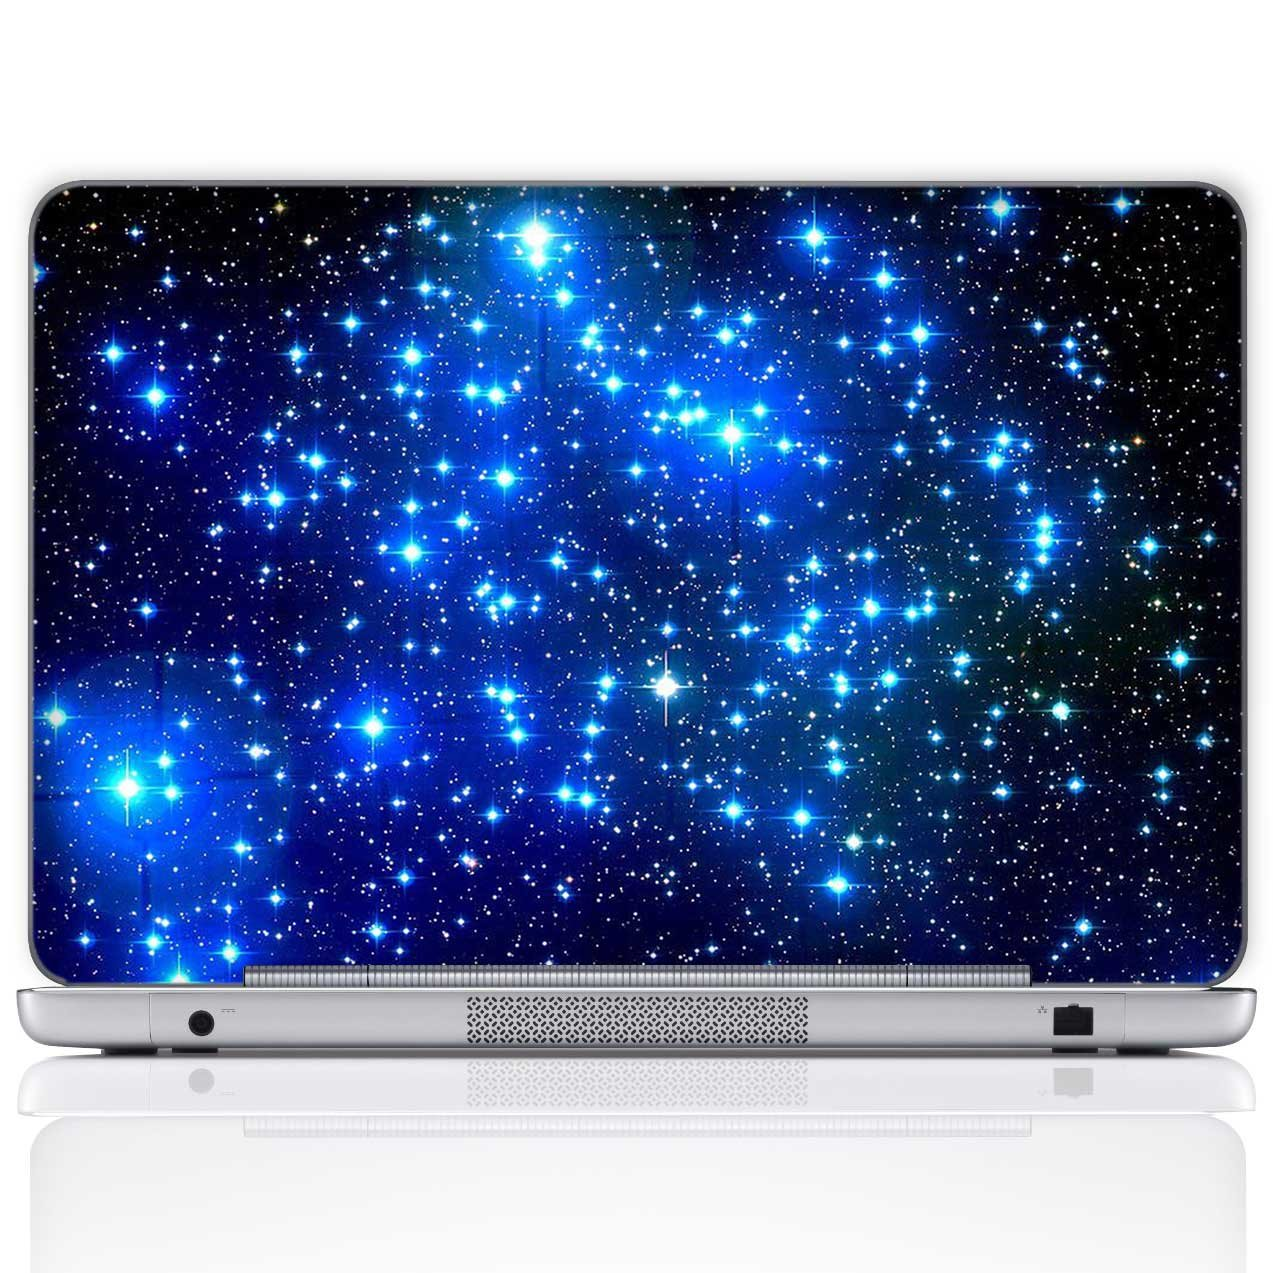 Meffort Inc Custom Size Laptop Notebook Skin Sticker Cover Art Decal (Free wrist pad), Customize Your Laptop Size - Galaxy Stars